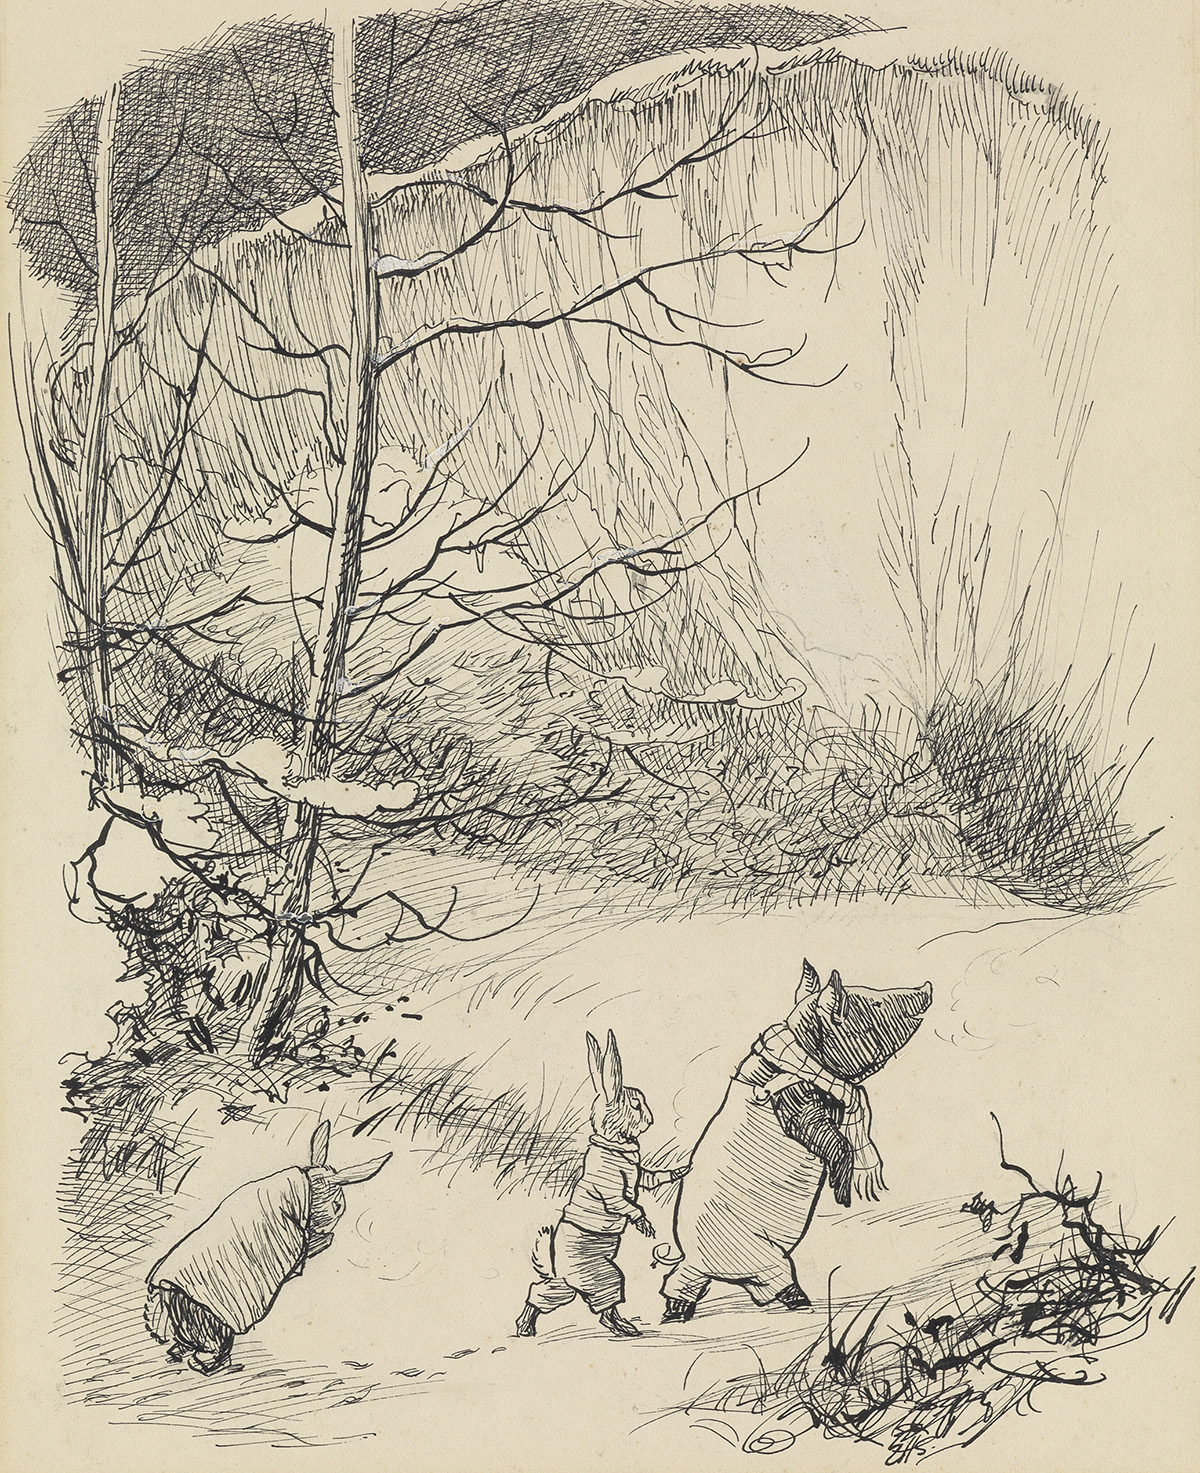 CHILDRENS KENNETH GRAHAME ERNEST H. SHEPARD. He led them into the chalk-pit, till they stood at the very foot.